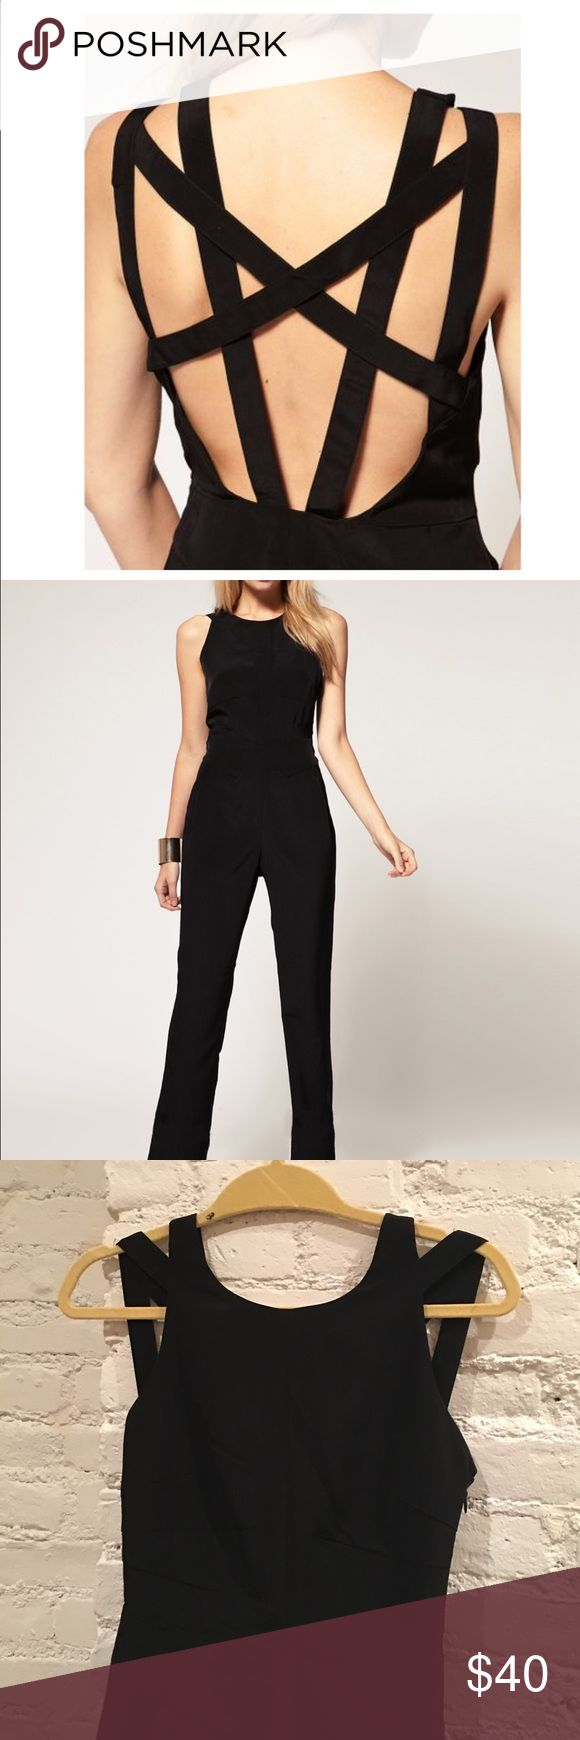 MAKE OFFER! Asos Petite jumpsuit with cross back Chic black Asos Petite exlusive jumpsuit with cross back. Side zip closure. So stylish! ASOS Petite Pants Jumpsuits & Rompers